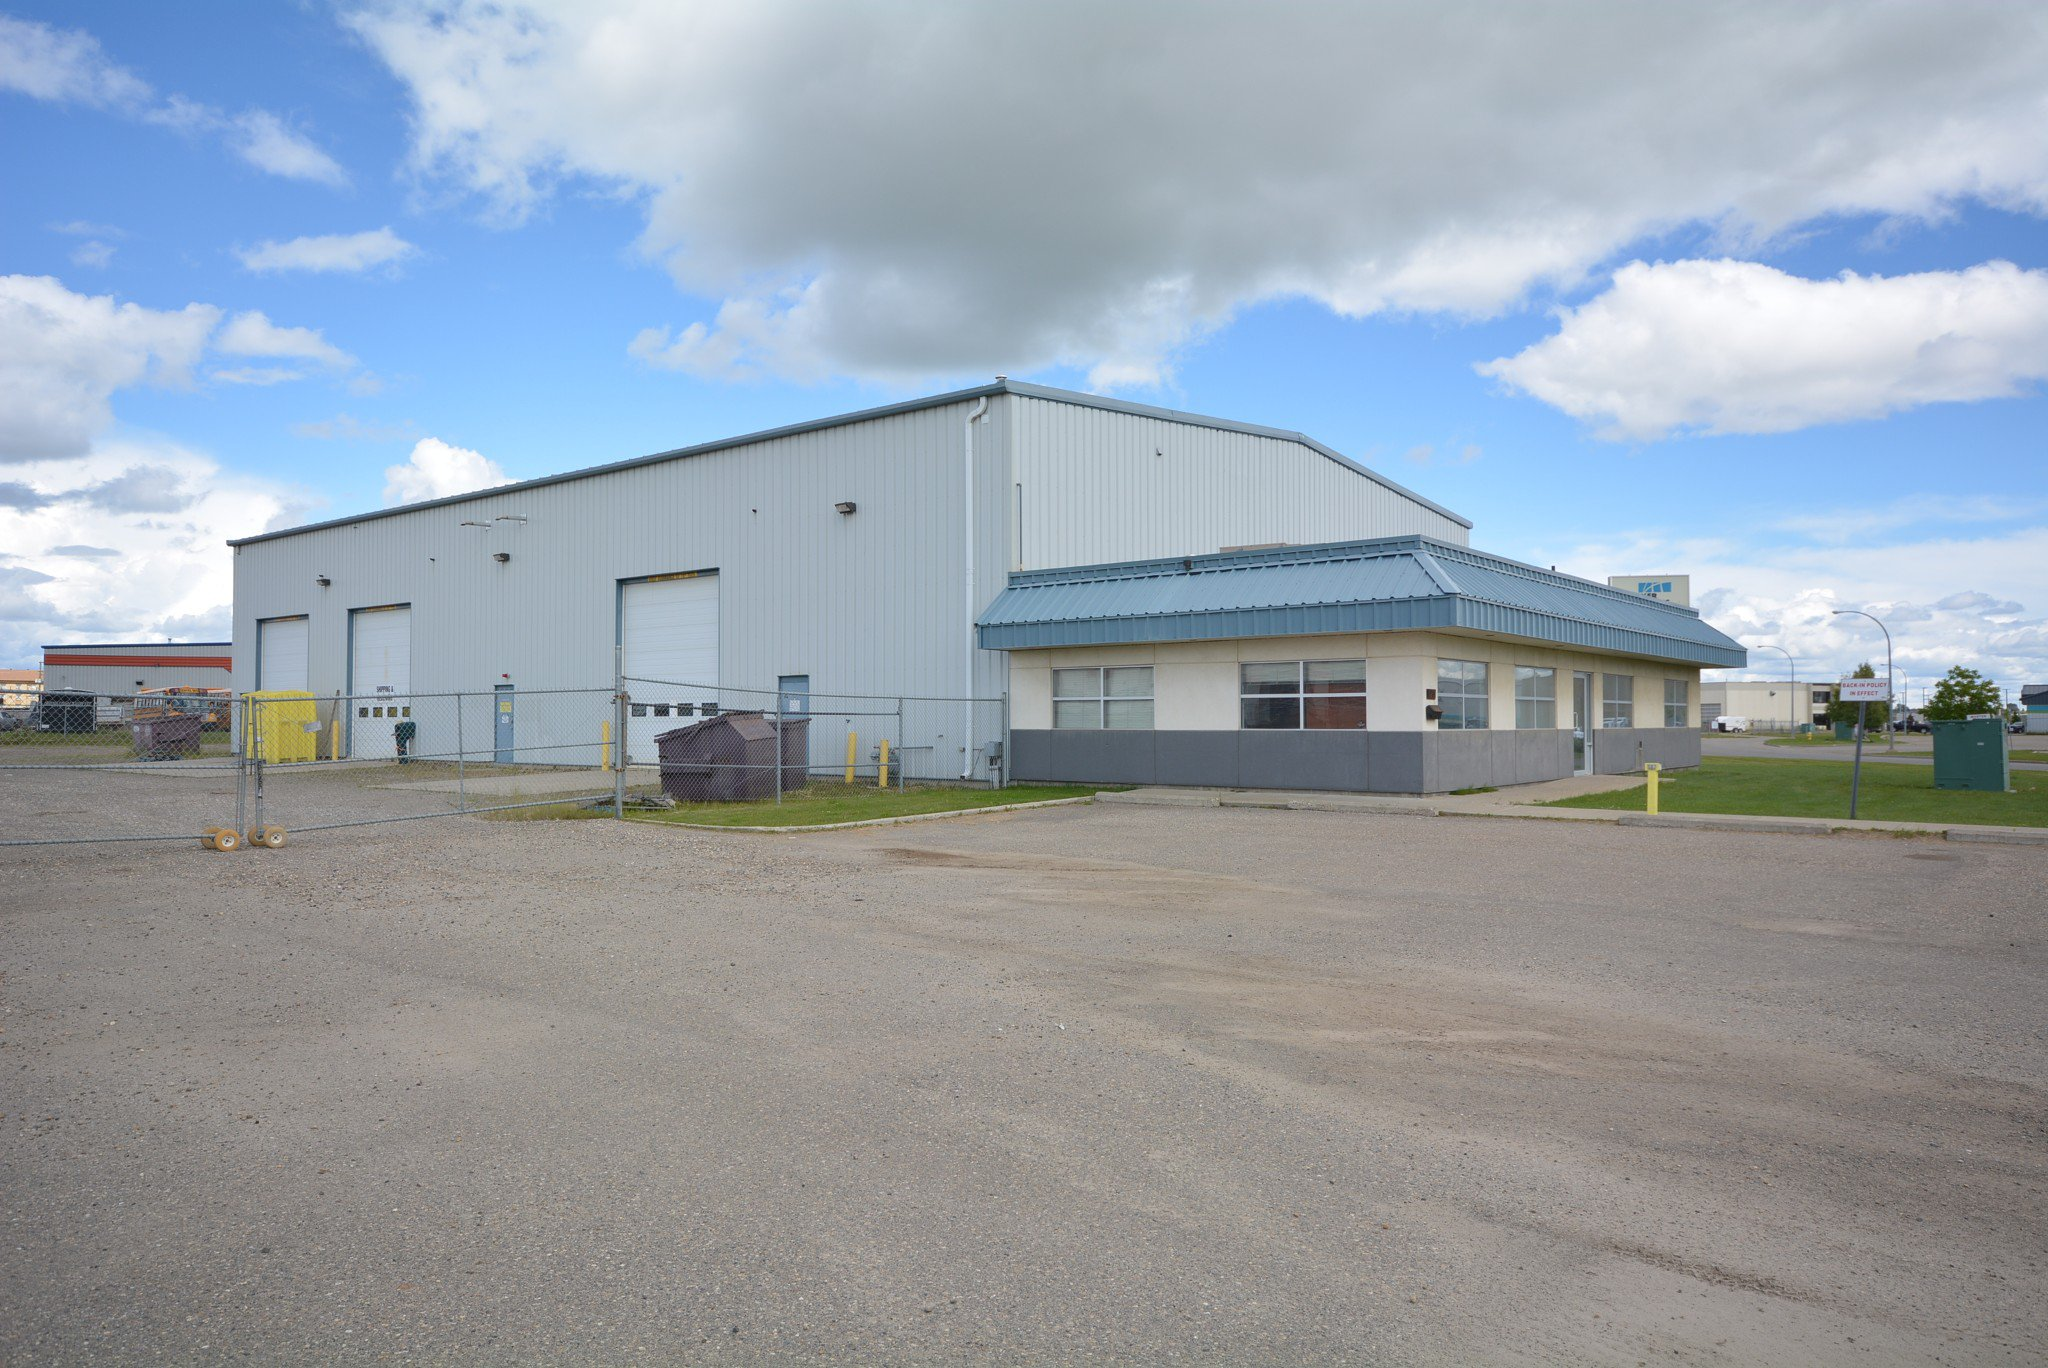 Main Photo: 11208 Tahltan Road in Fort Saint John: Fort St. John - City SW Industrial for sale (Fort St. John (Zone 60))